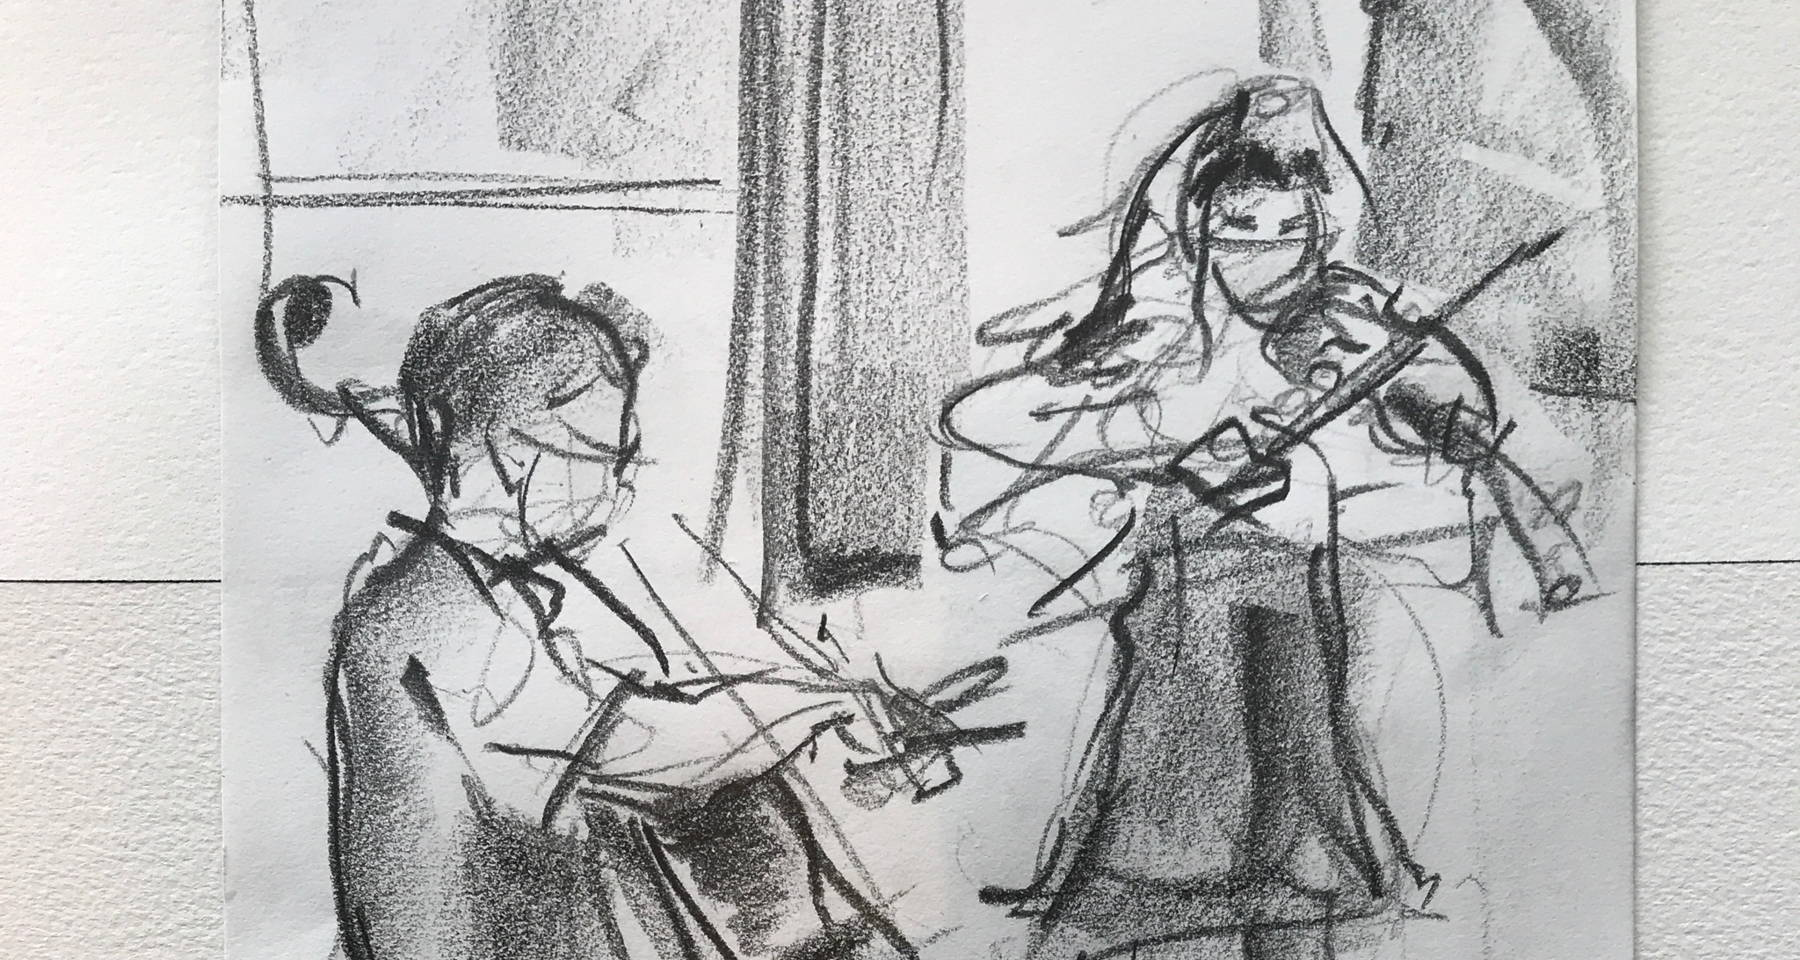 Parallel Play! Violin, Cello, and 2 Visual Artists Live From an Art Studio